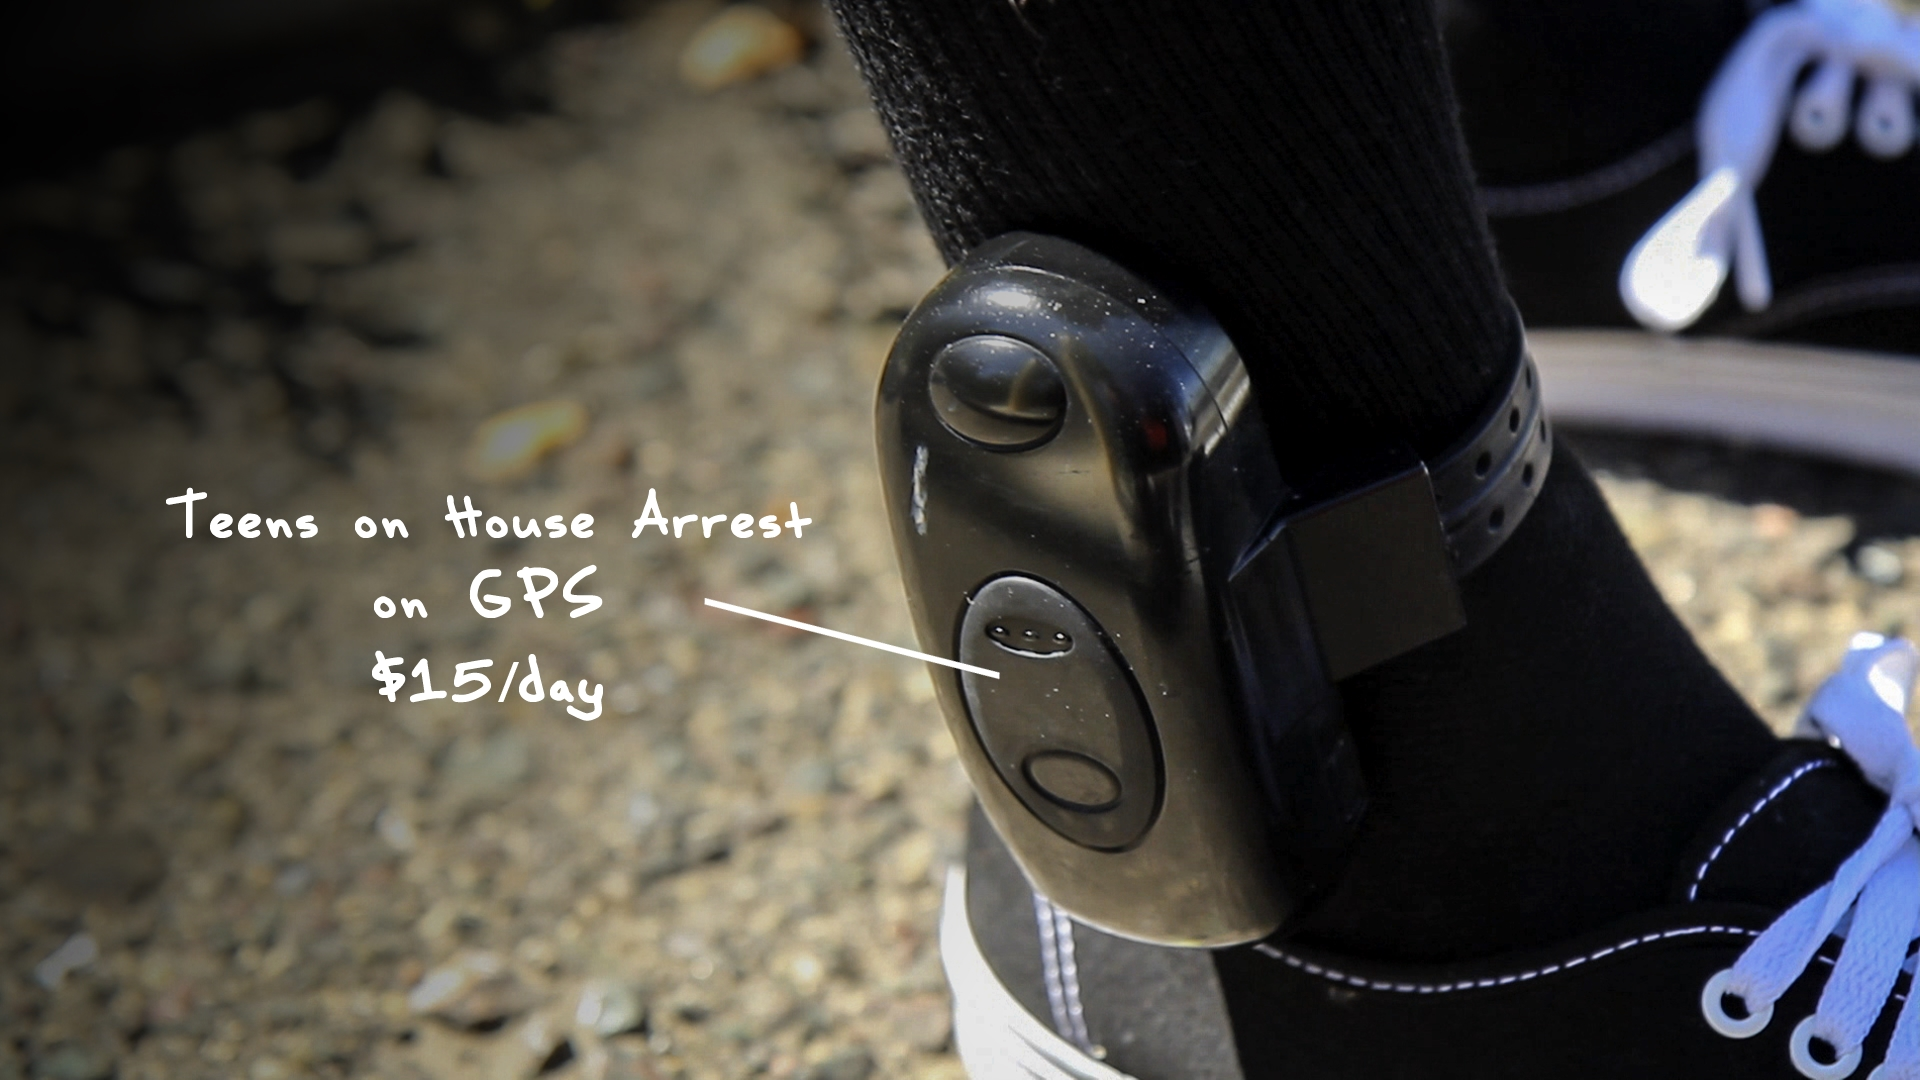 electronic gps have ankle bracelets do girls myshoplah arrest bracelet monitoring house